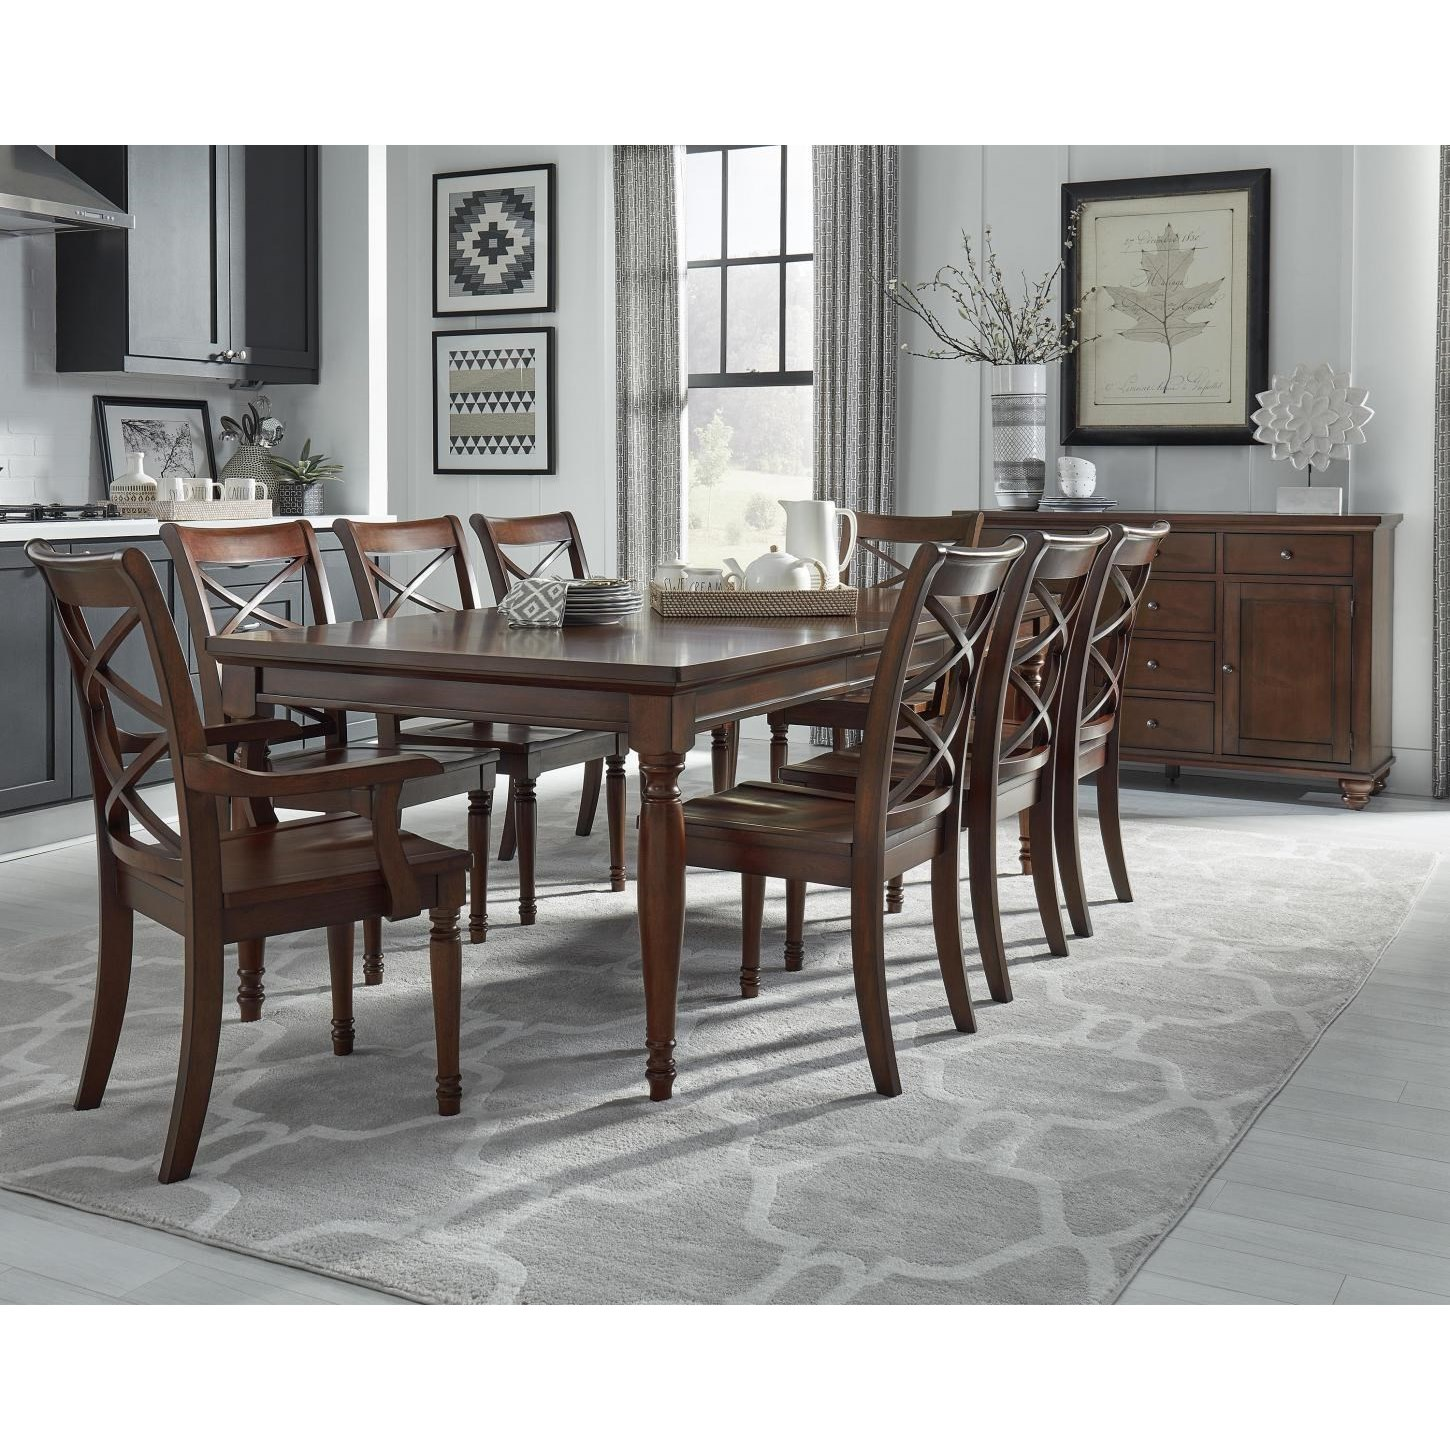 Cambridge Table & Chair Set by Aspenhome at Walker's Furniture